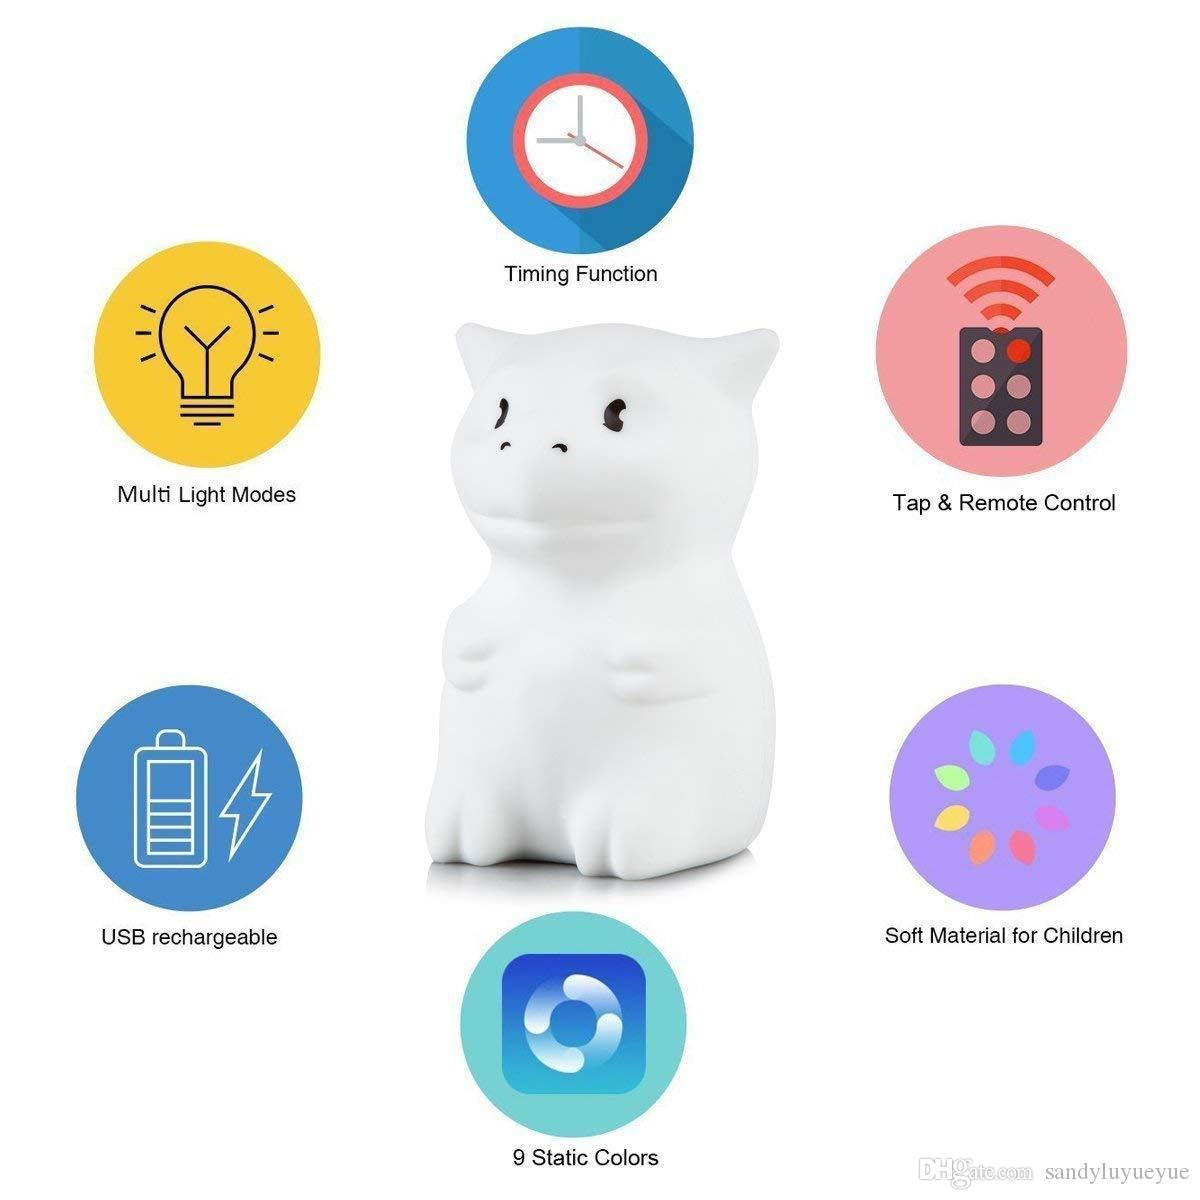 71f9284de4 2019 LED Nursery Night Lights For Kids: Cute Animal Silicone Baby Night  Light With Touch Sensor And Remote Portable And Rechargeable Infant Or From  ...